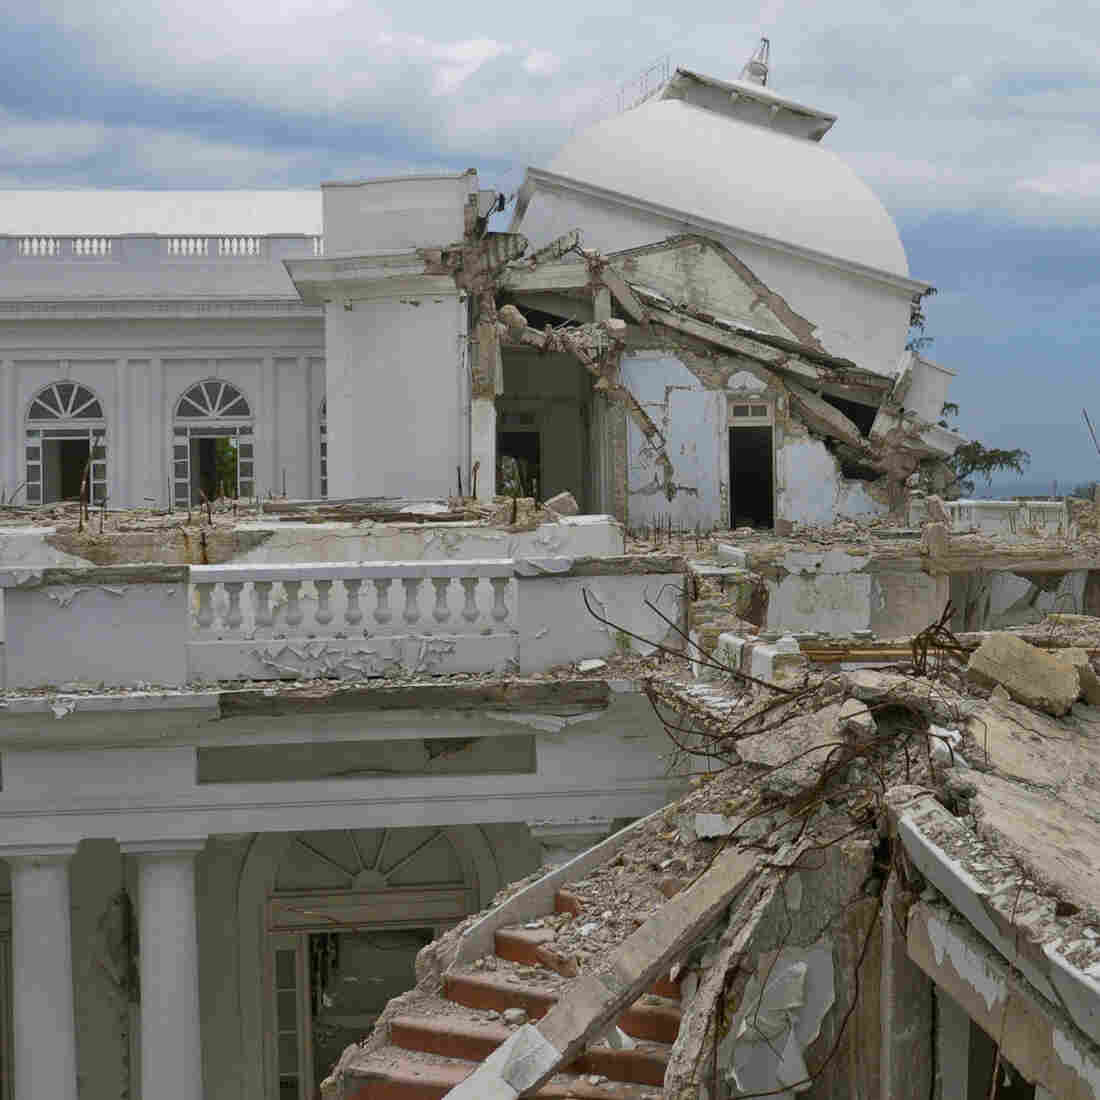 Documenting Haiti's Ruined Grandeur